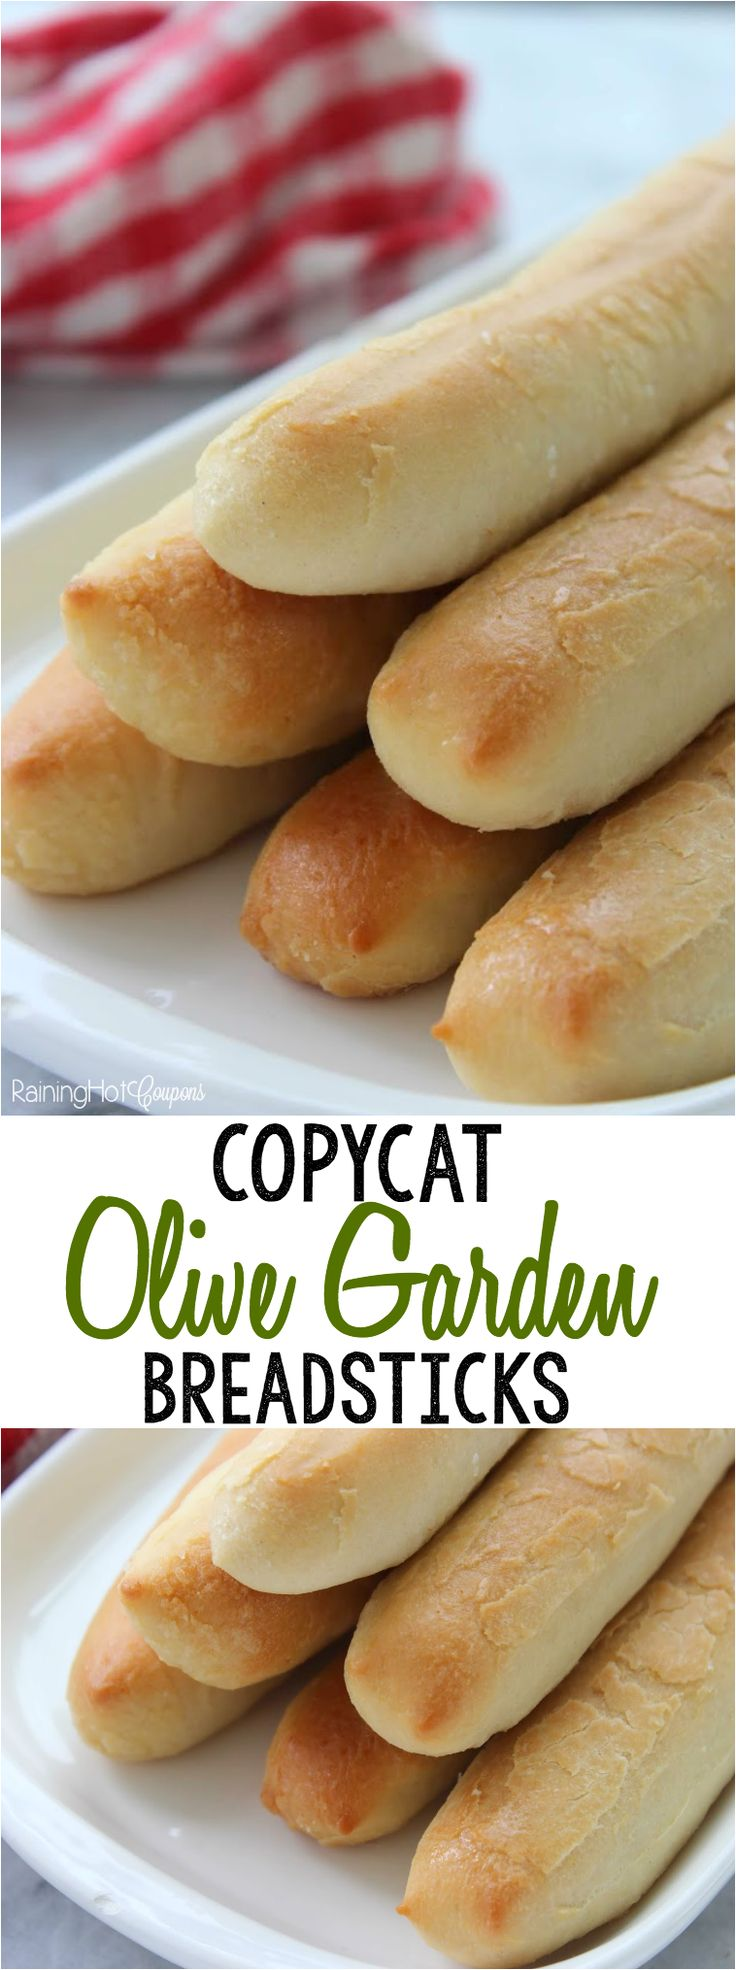 Best 25 olive garden breadsticks ideas on pinterest homemade breadsticks copycat olive for How many carbs in olive garden breadsticks